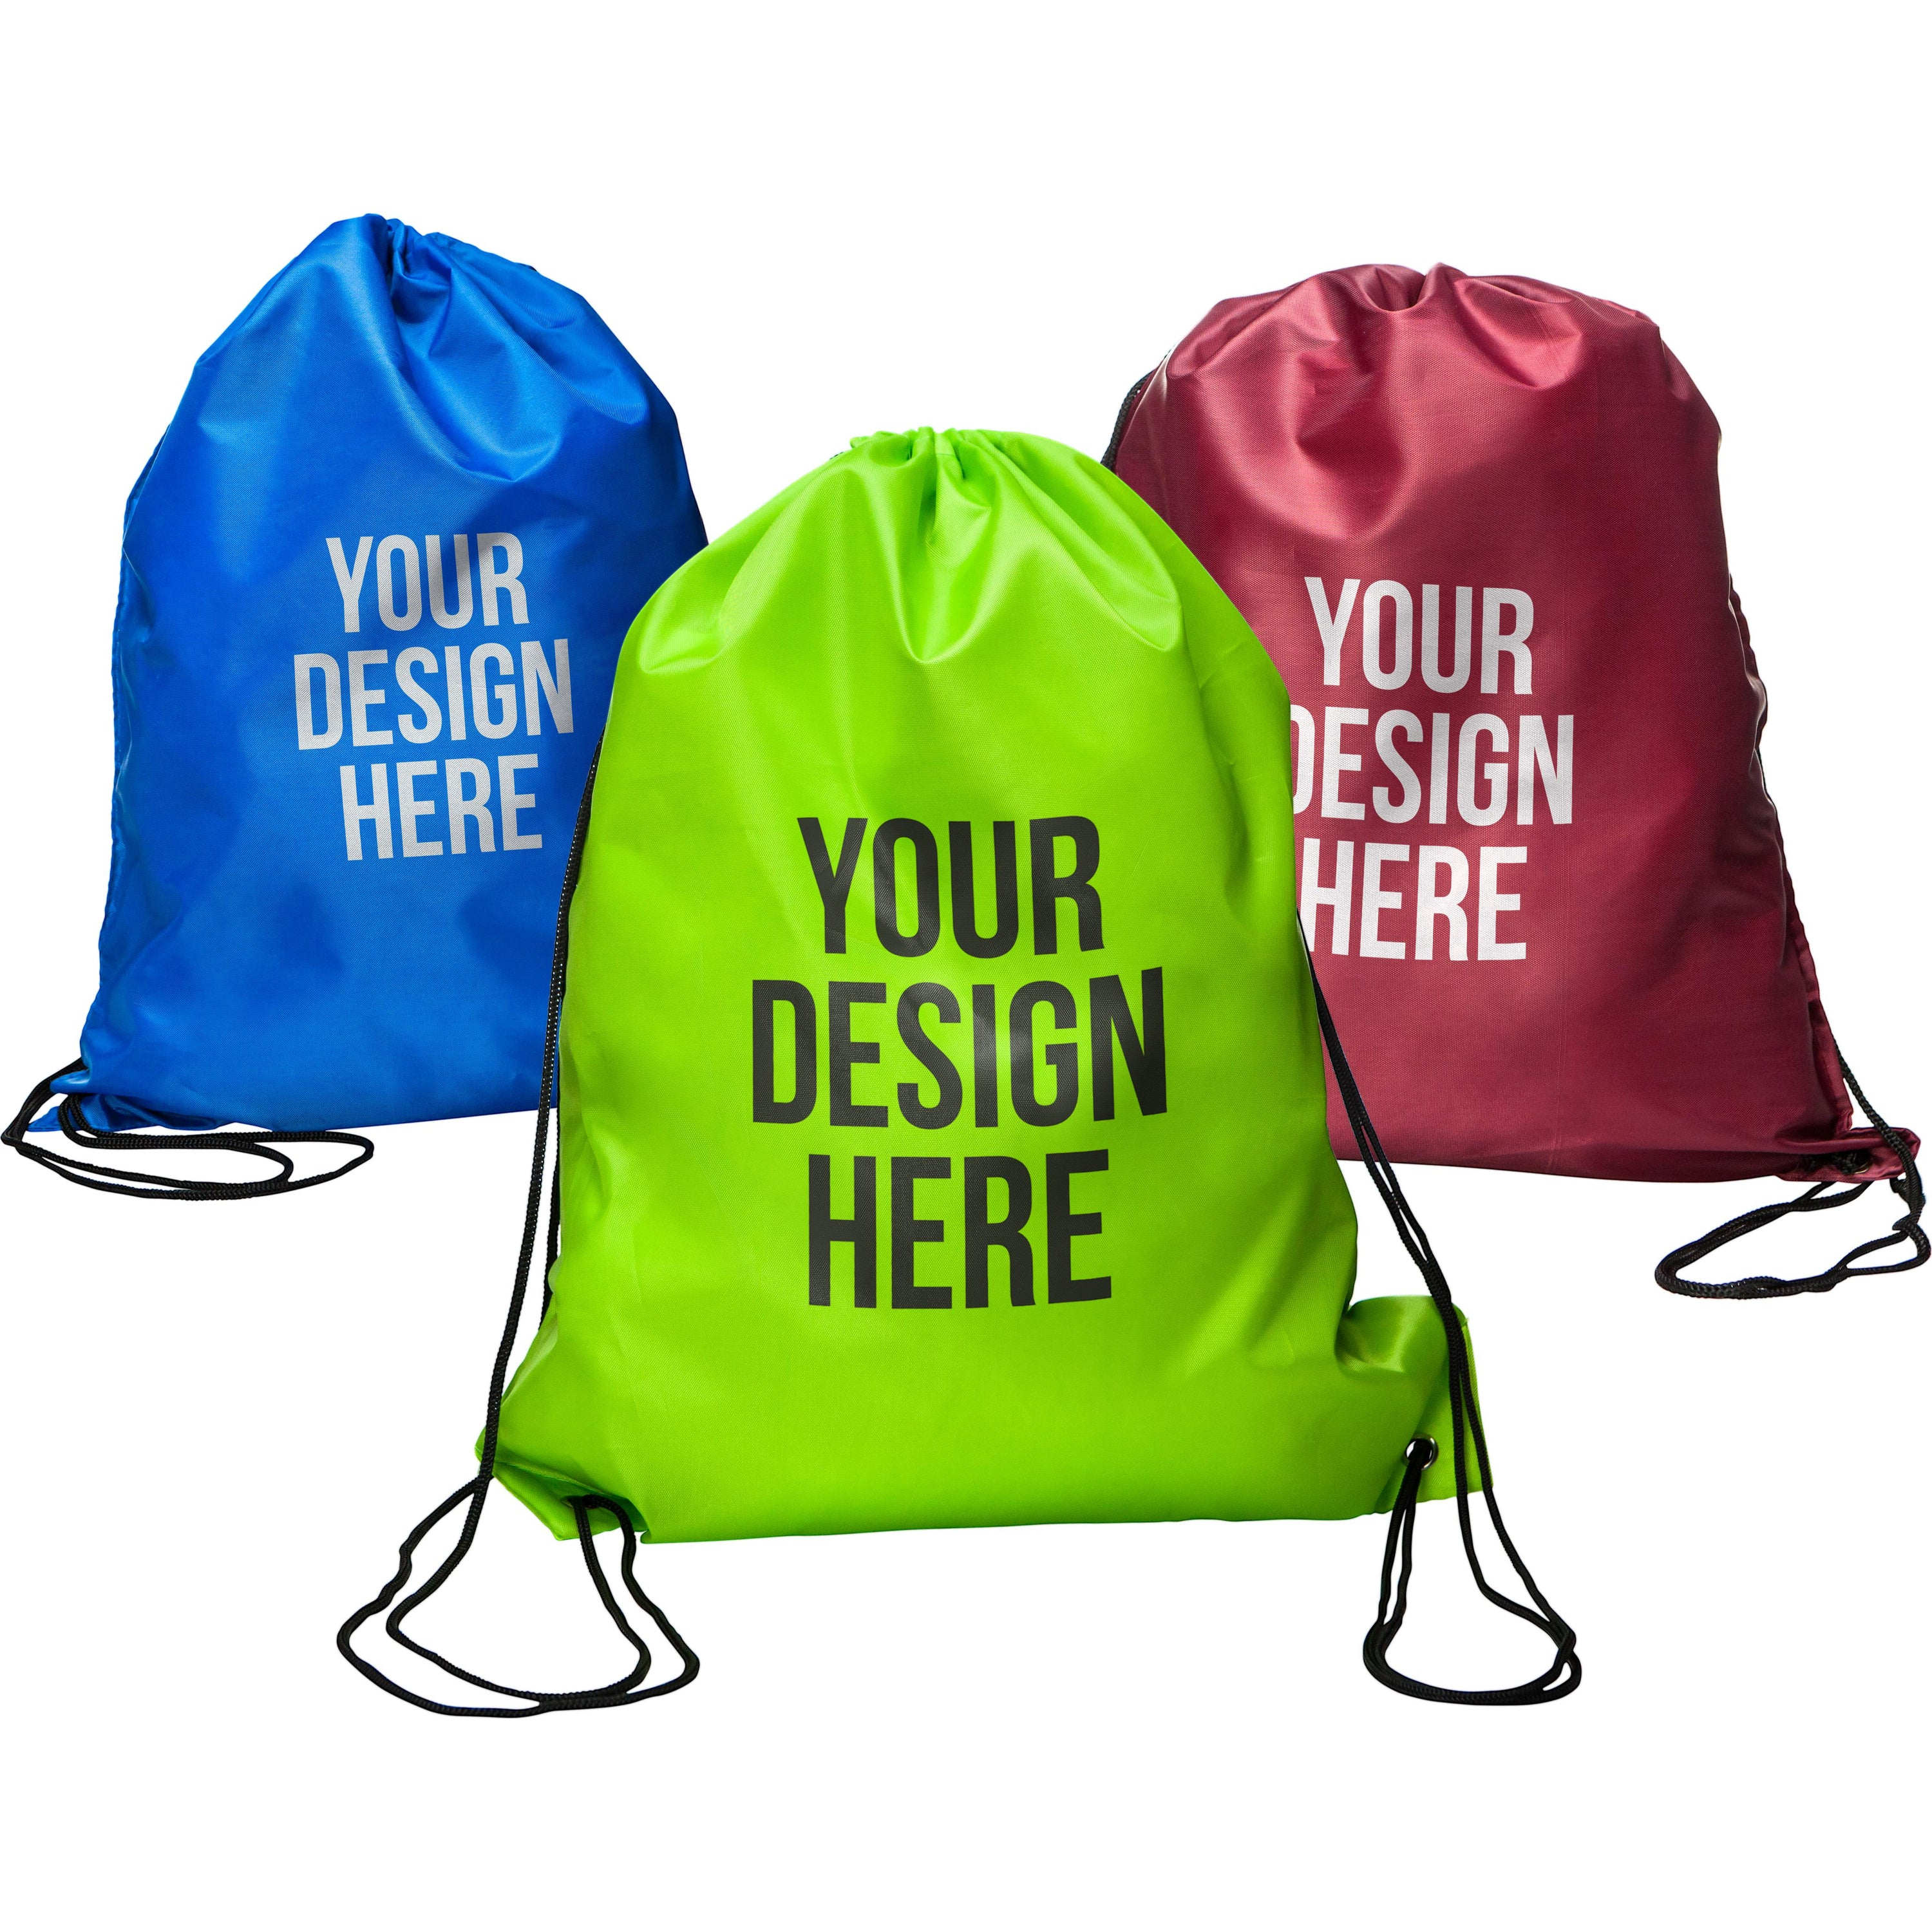 Cheap Promotional Items Cheap Personalized Gifts Quality Logo Products